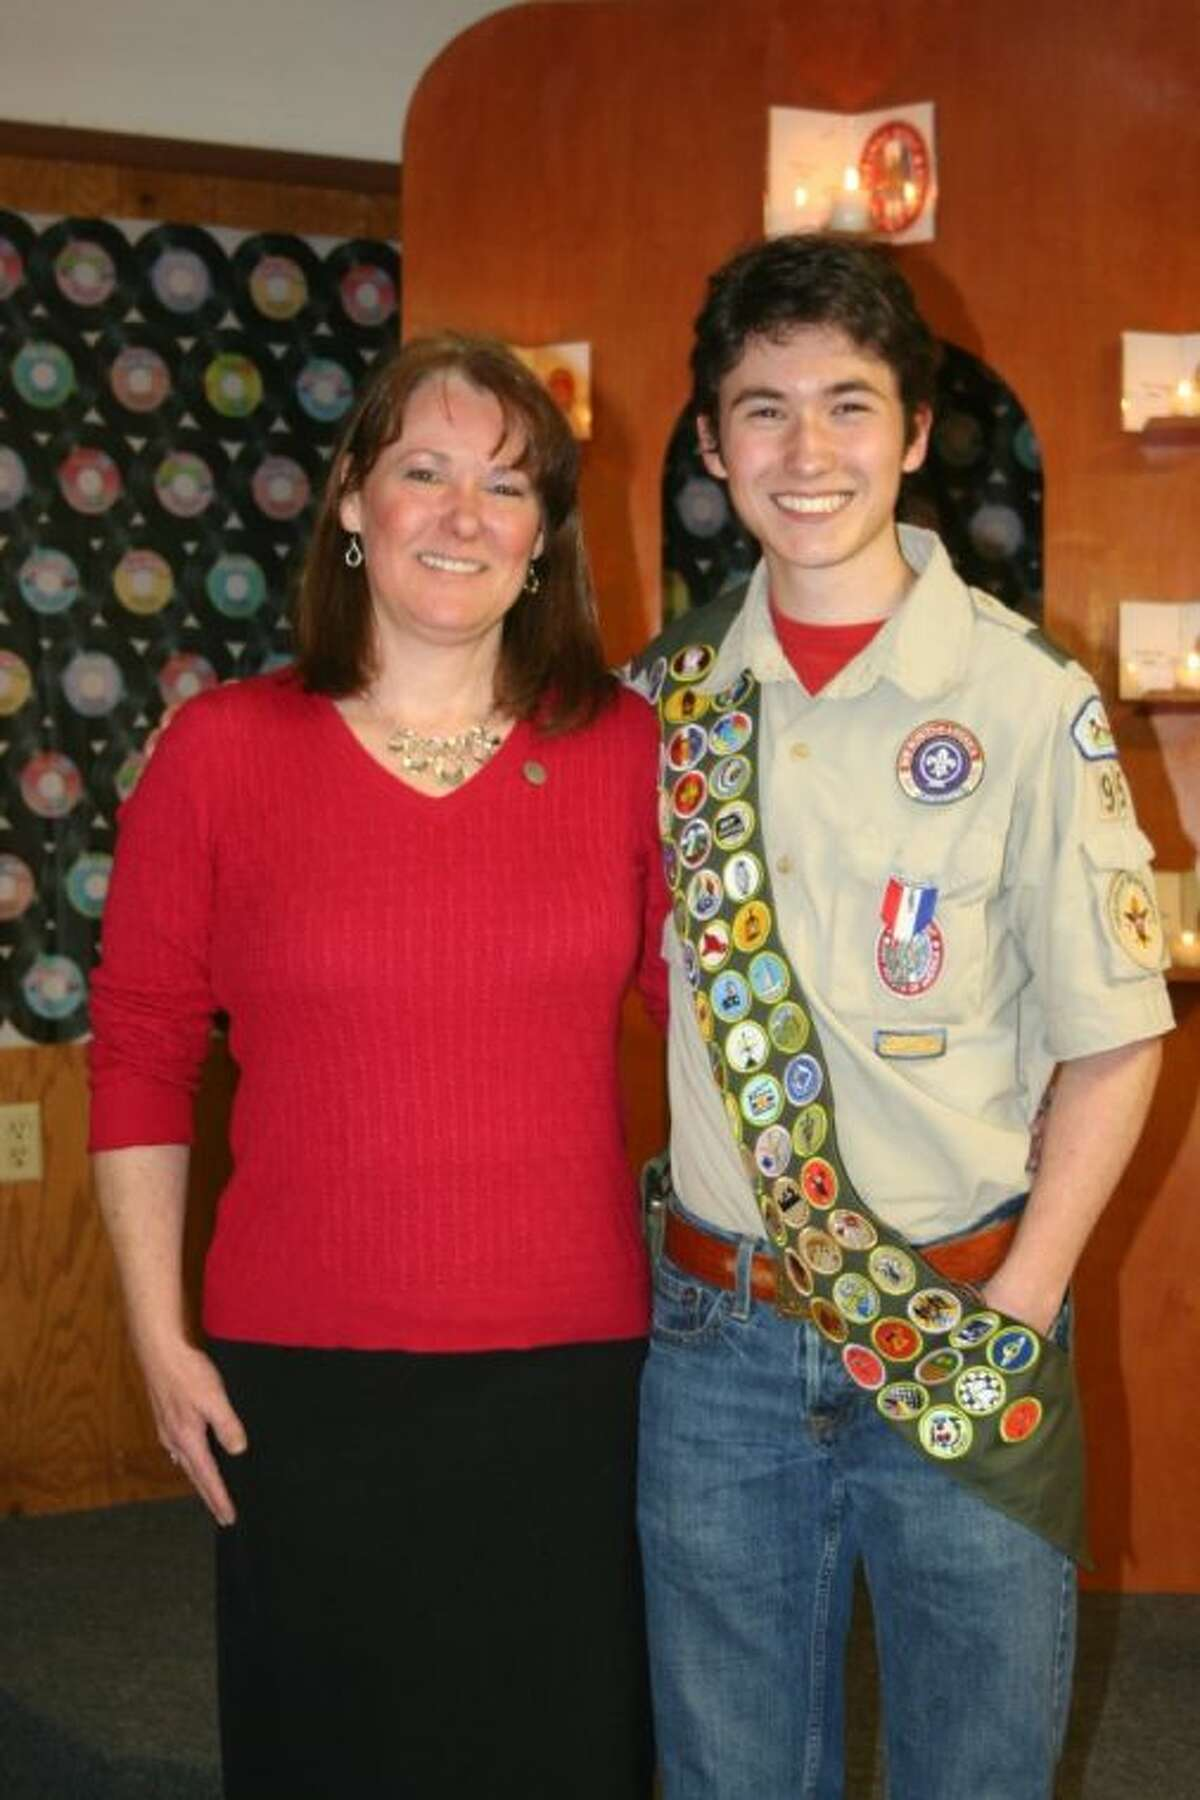 Cory Rodriguez and his mother, Keena Tarrant, celebrated during his Eagle Scout Code of Honor Ceremony.